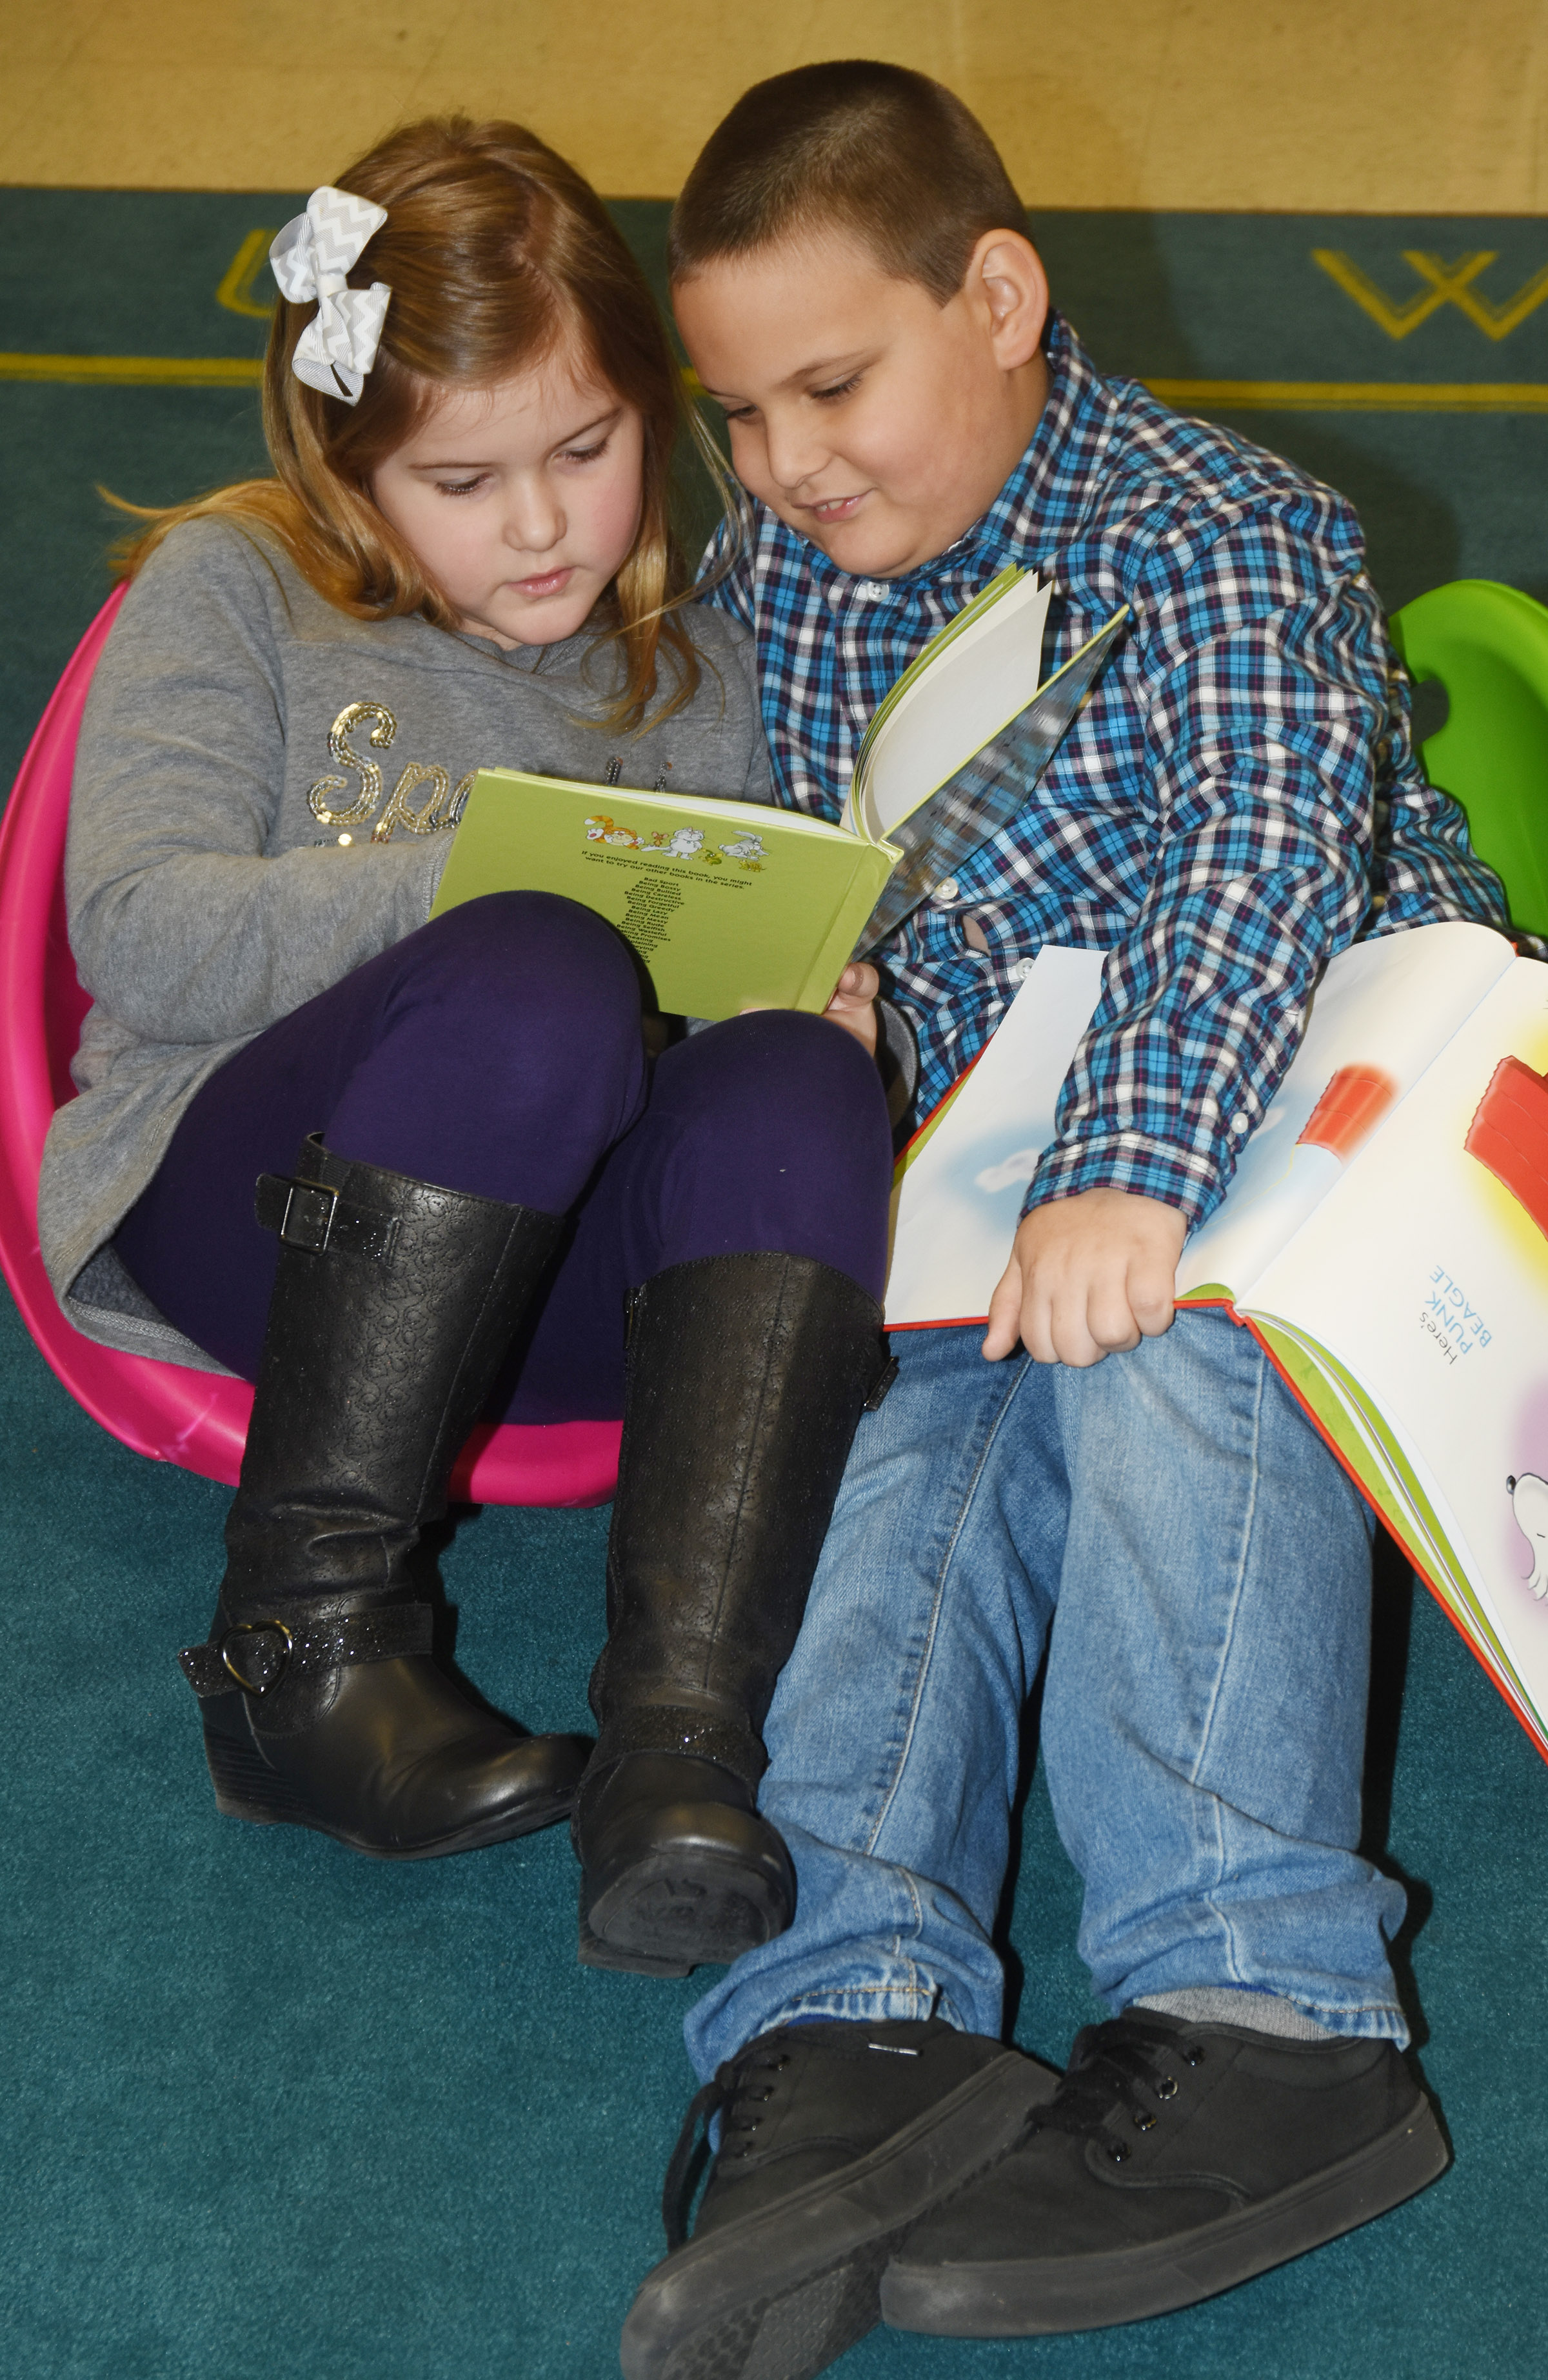 CES first-graders Aubreigh Knifley, at left, and Cloud Malone read together.